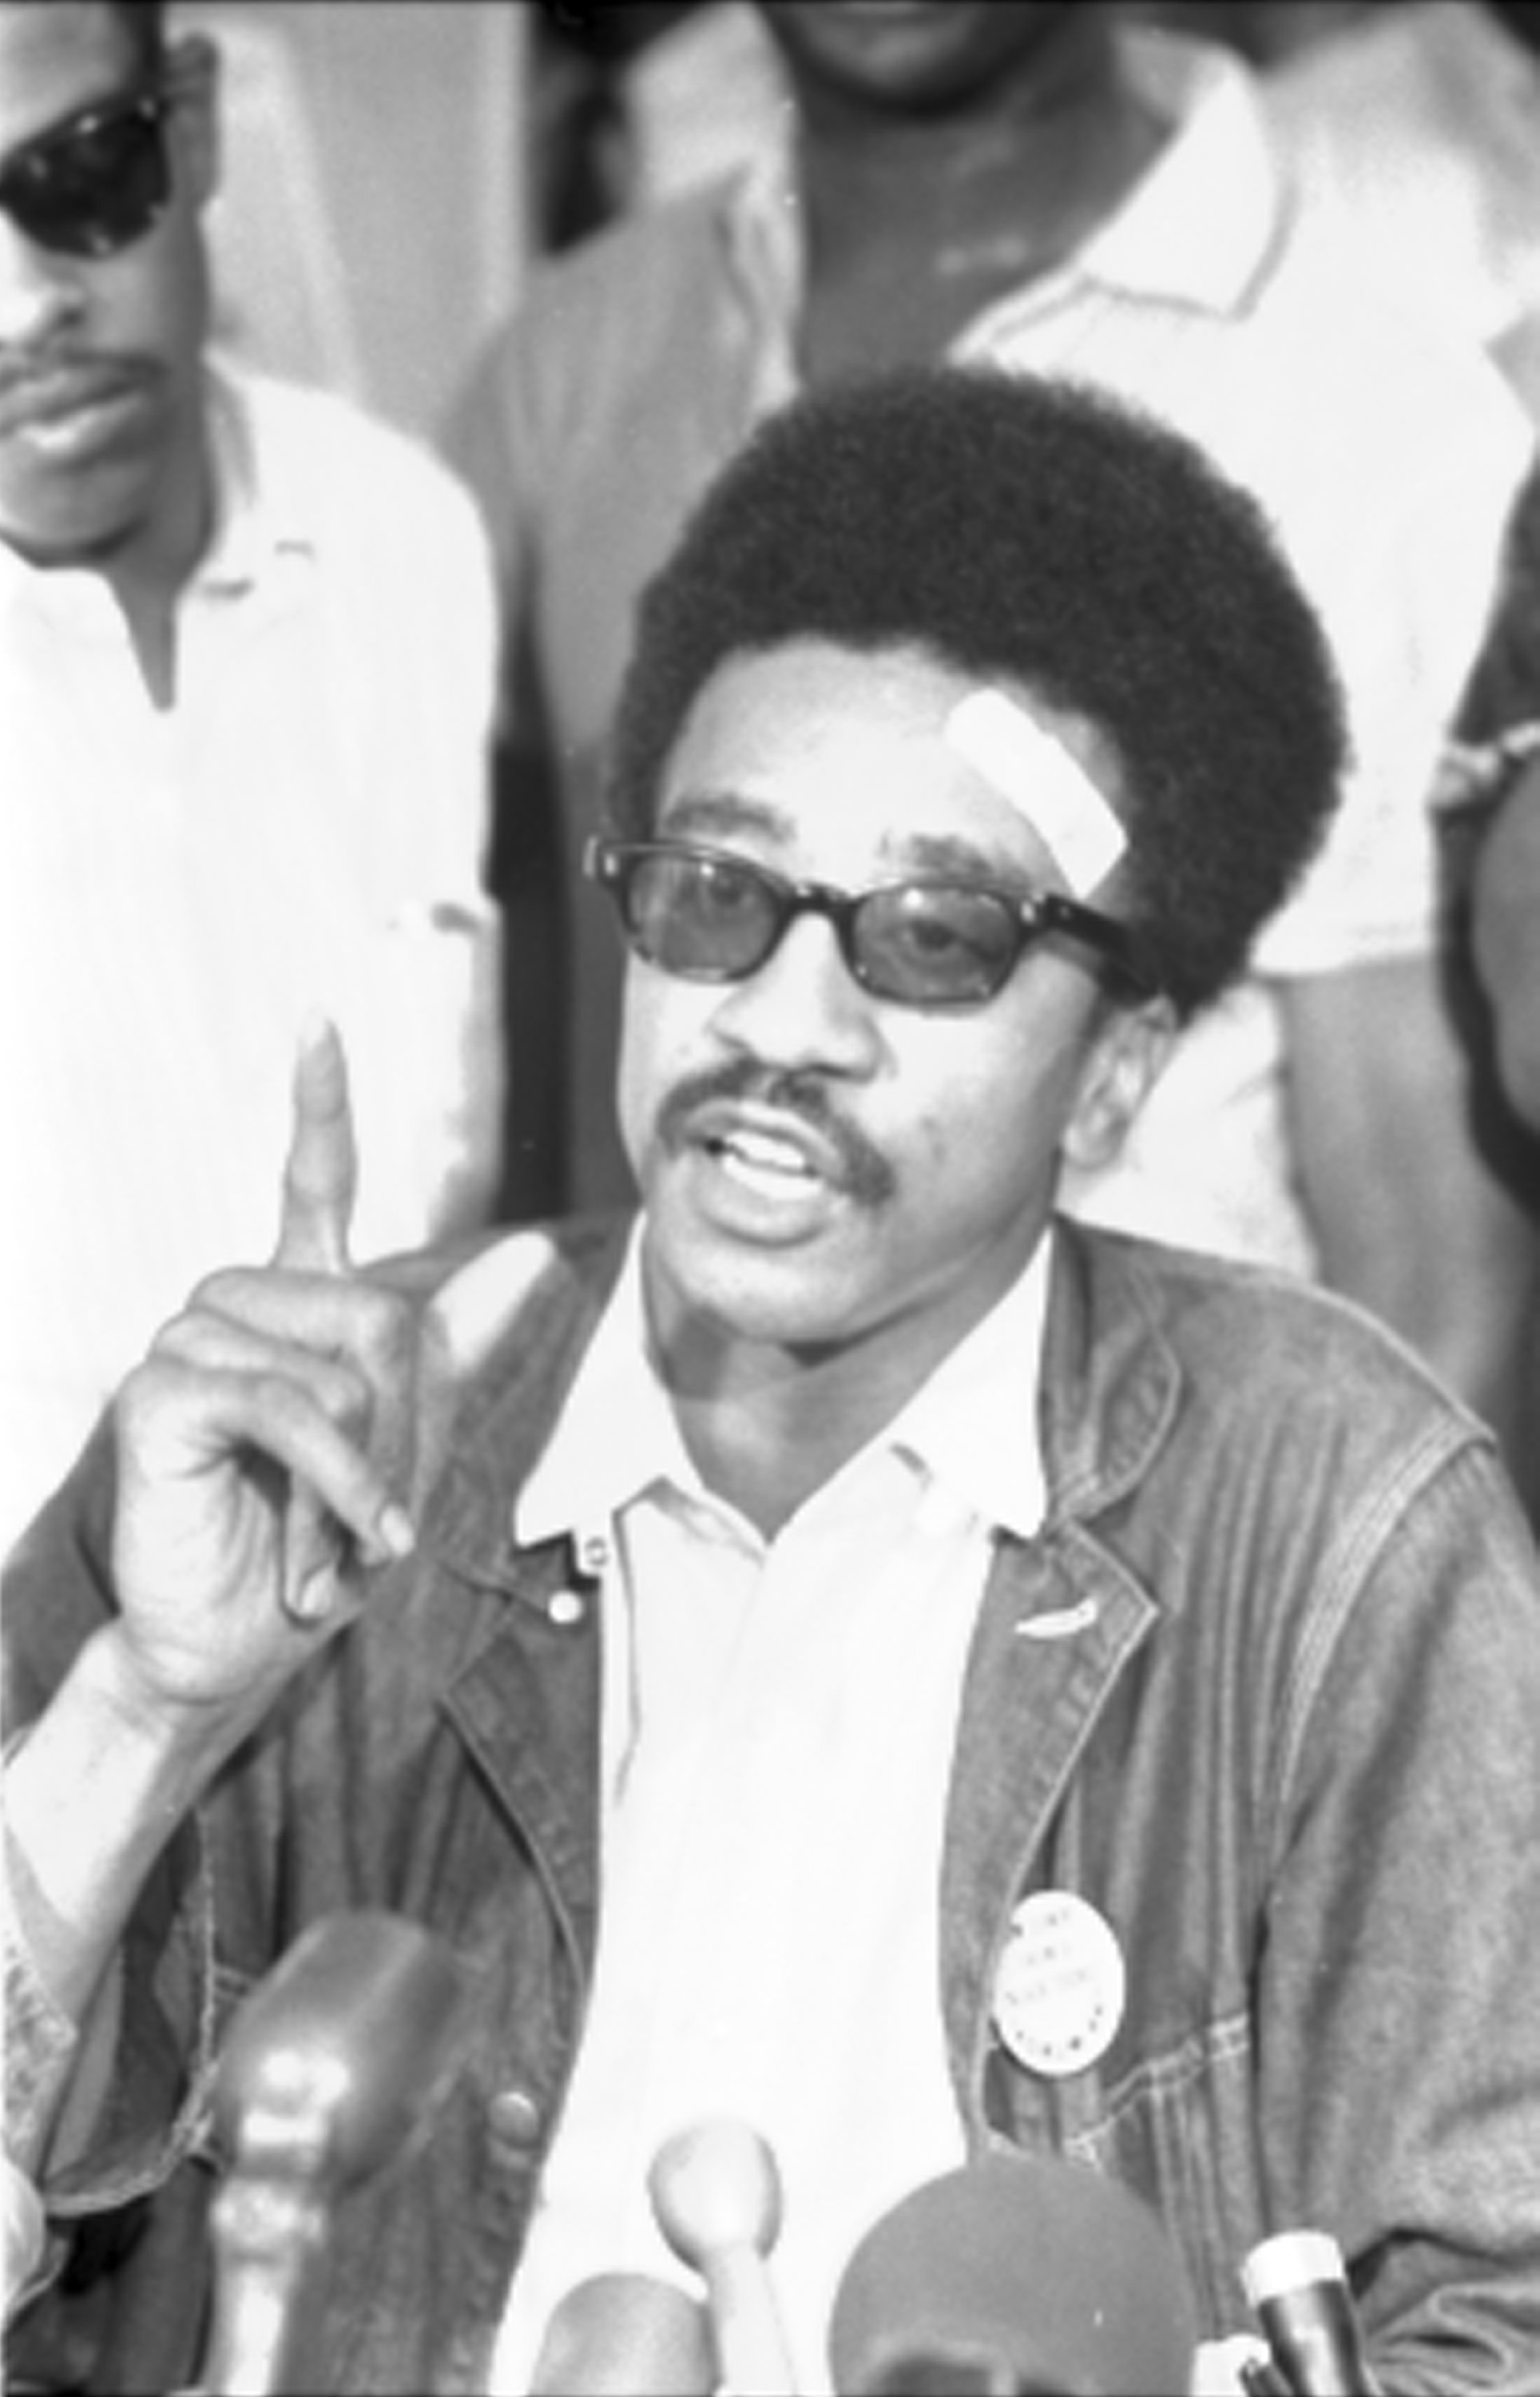 https://i1.wp.com/upload.wikimedia.org/wikipedia/commons/5/54/H_Rap_Brown_-_USNWR.jpg